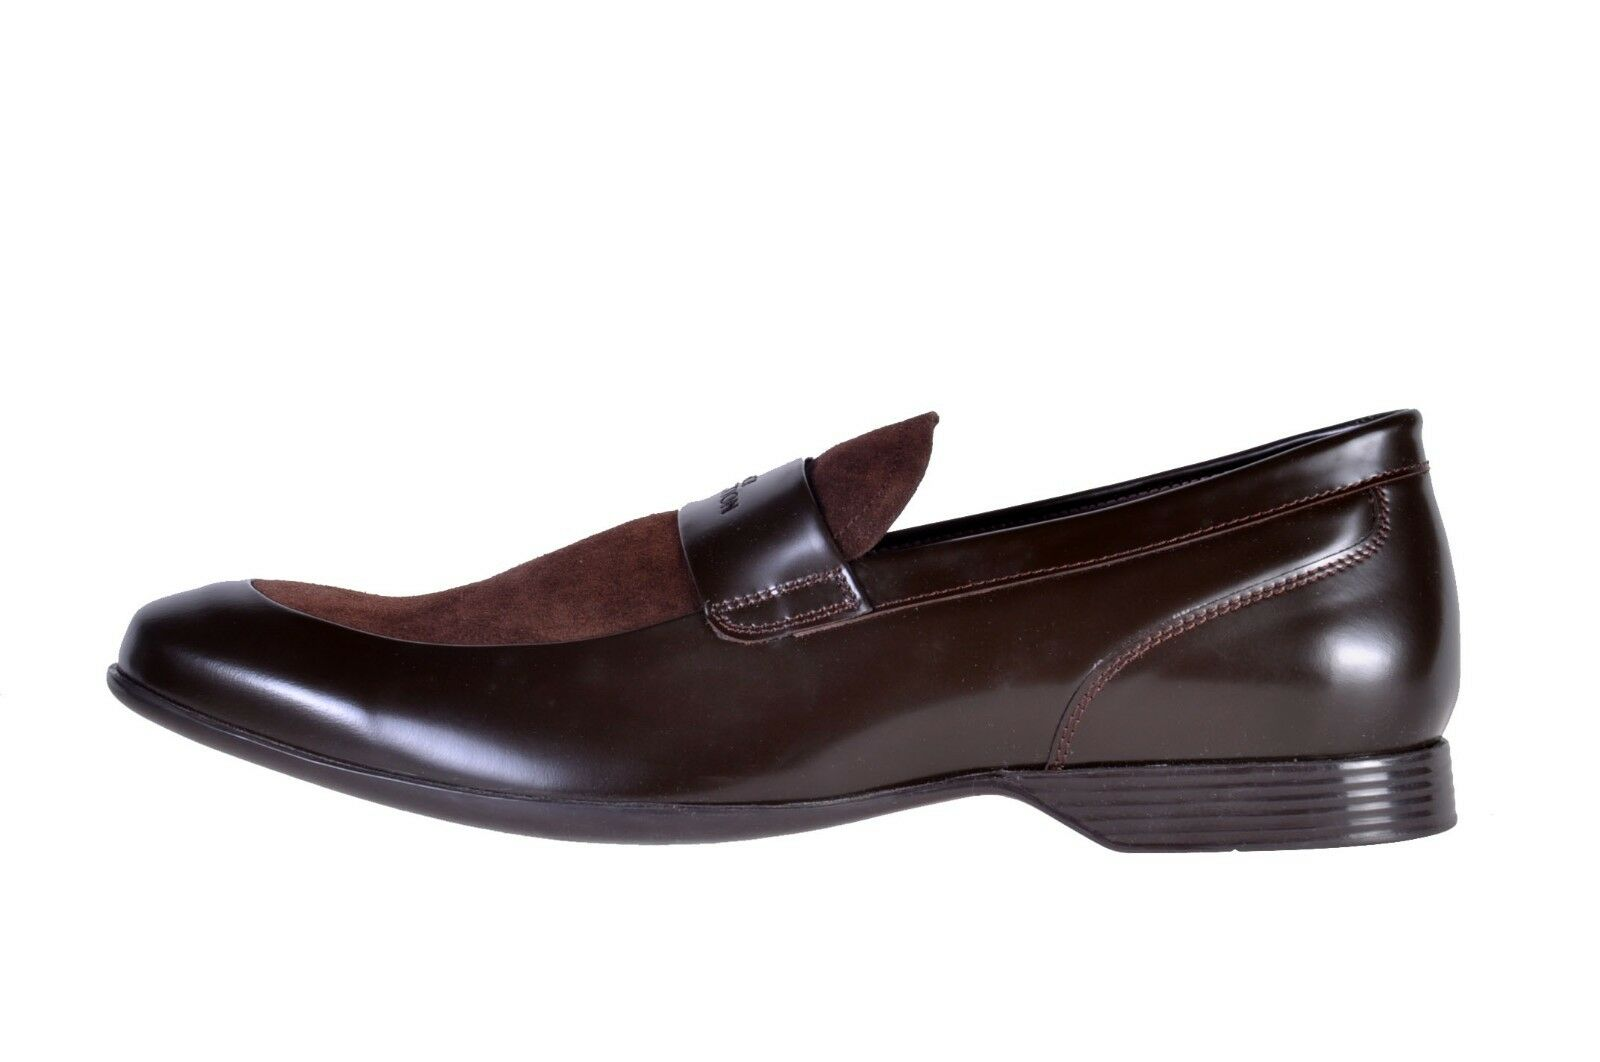 NEW LEATHER VERSACE DARK BROWN SUEDE LEATHER NEW LOAFERS SCARPE 42 - 9 59af47